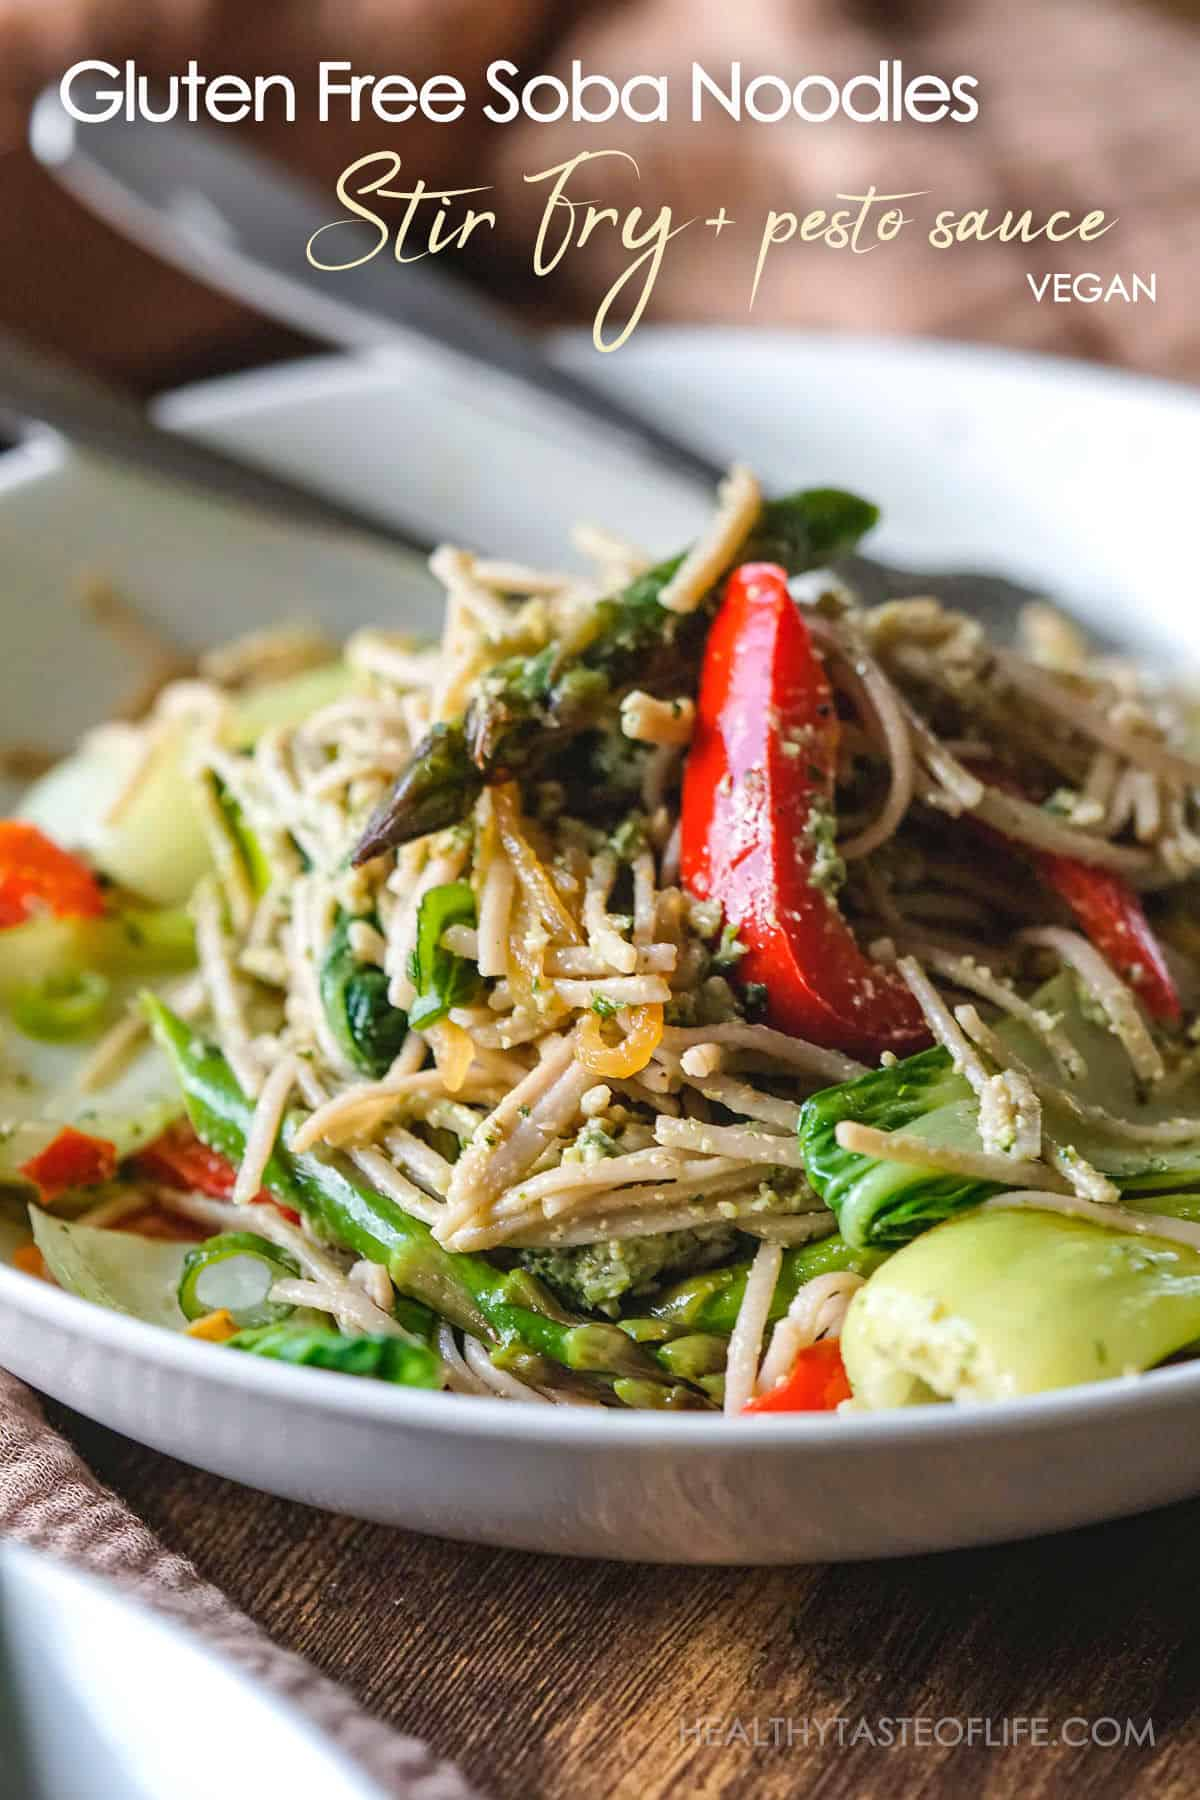 Easy gluten free soba noodles stir fry with basil pesto - simple, quick and can be served hot or cold, it's healthy and full of flavor plus comes together in under 30 minutes.